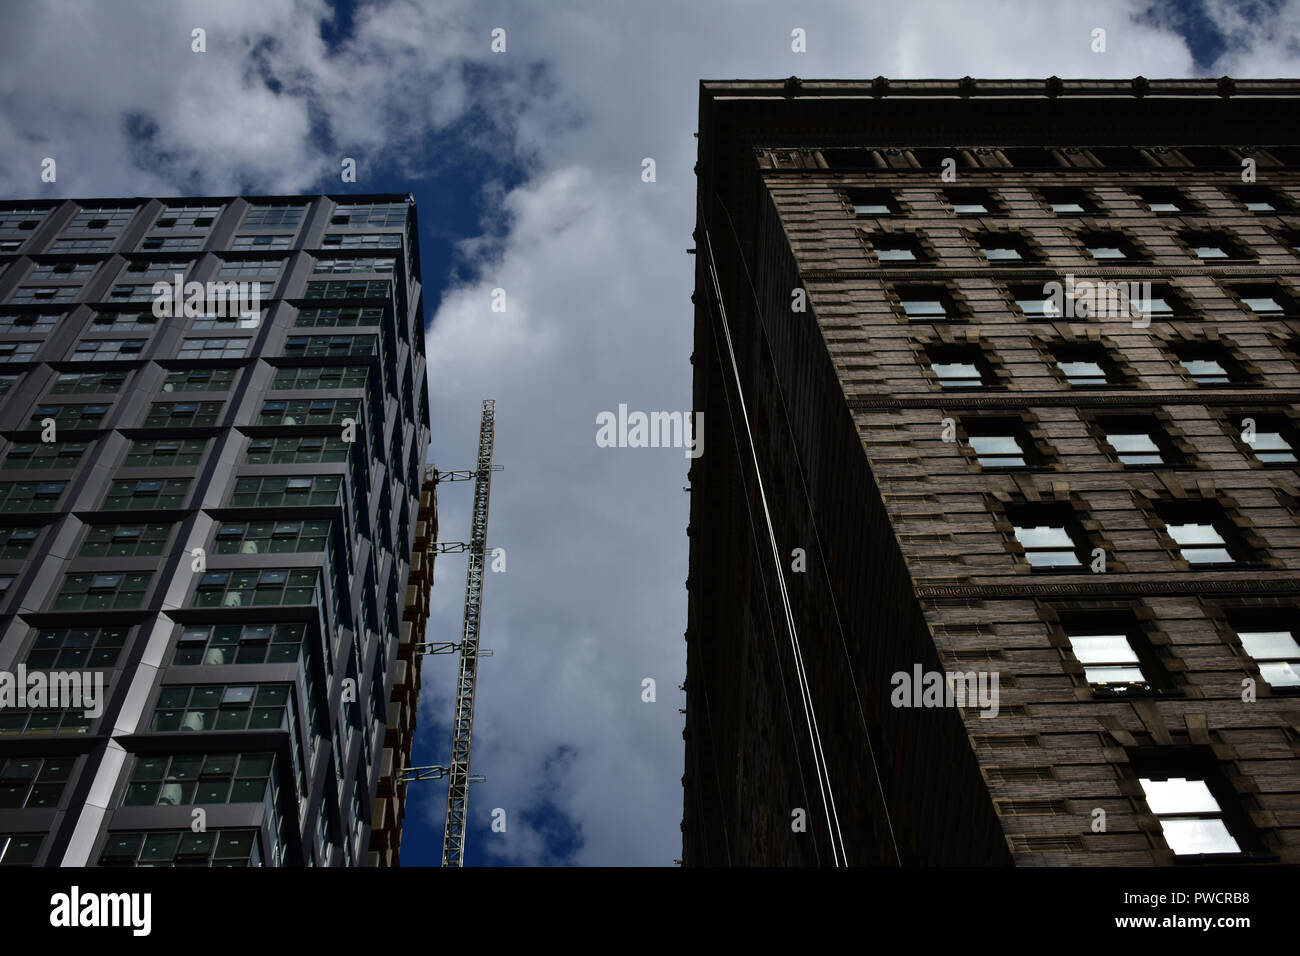 Philadelphia Building Architecture historic vs. modern with POV looking up - Stock Image